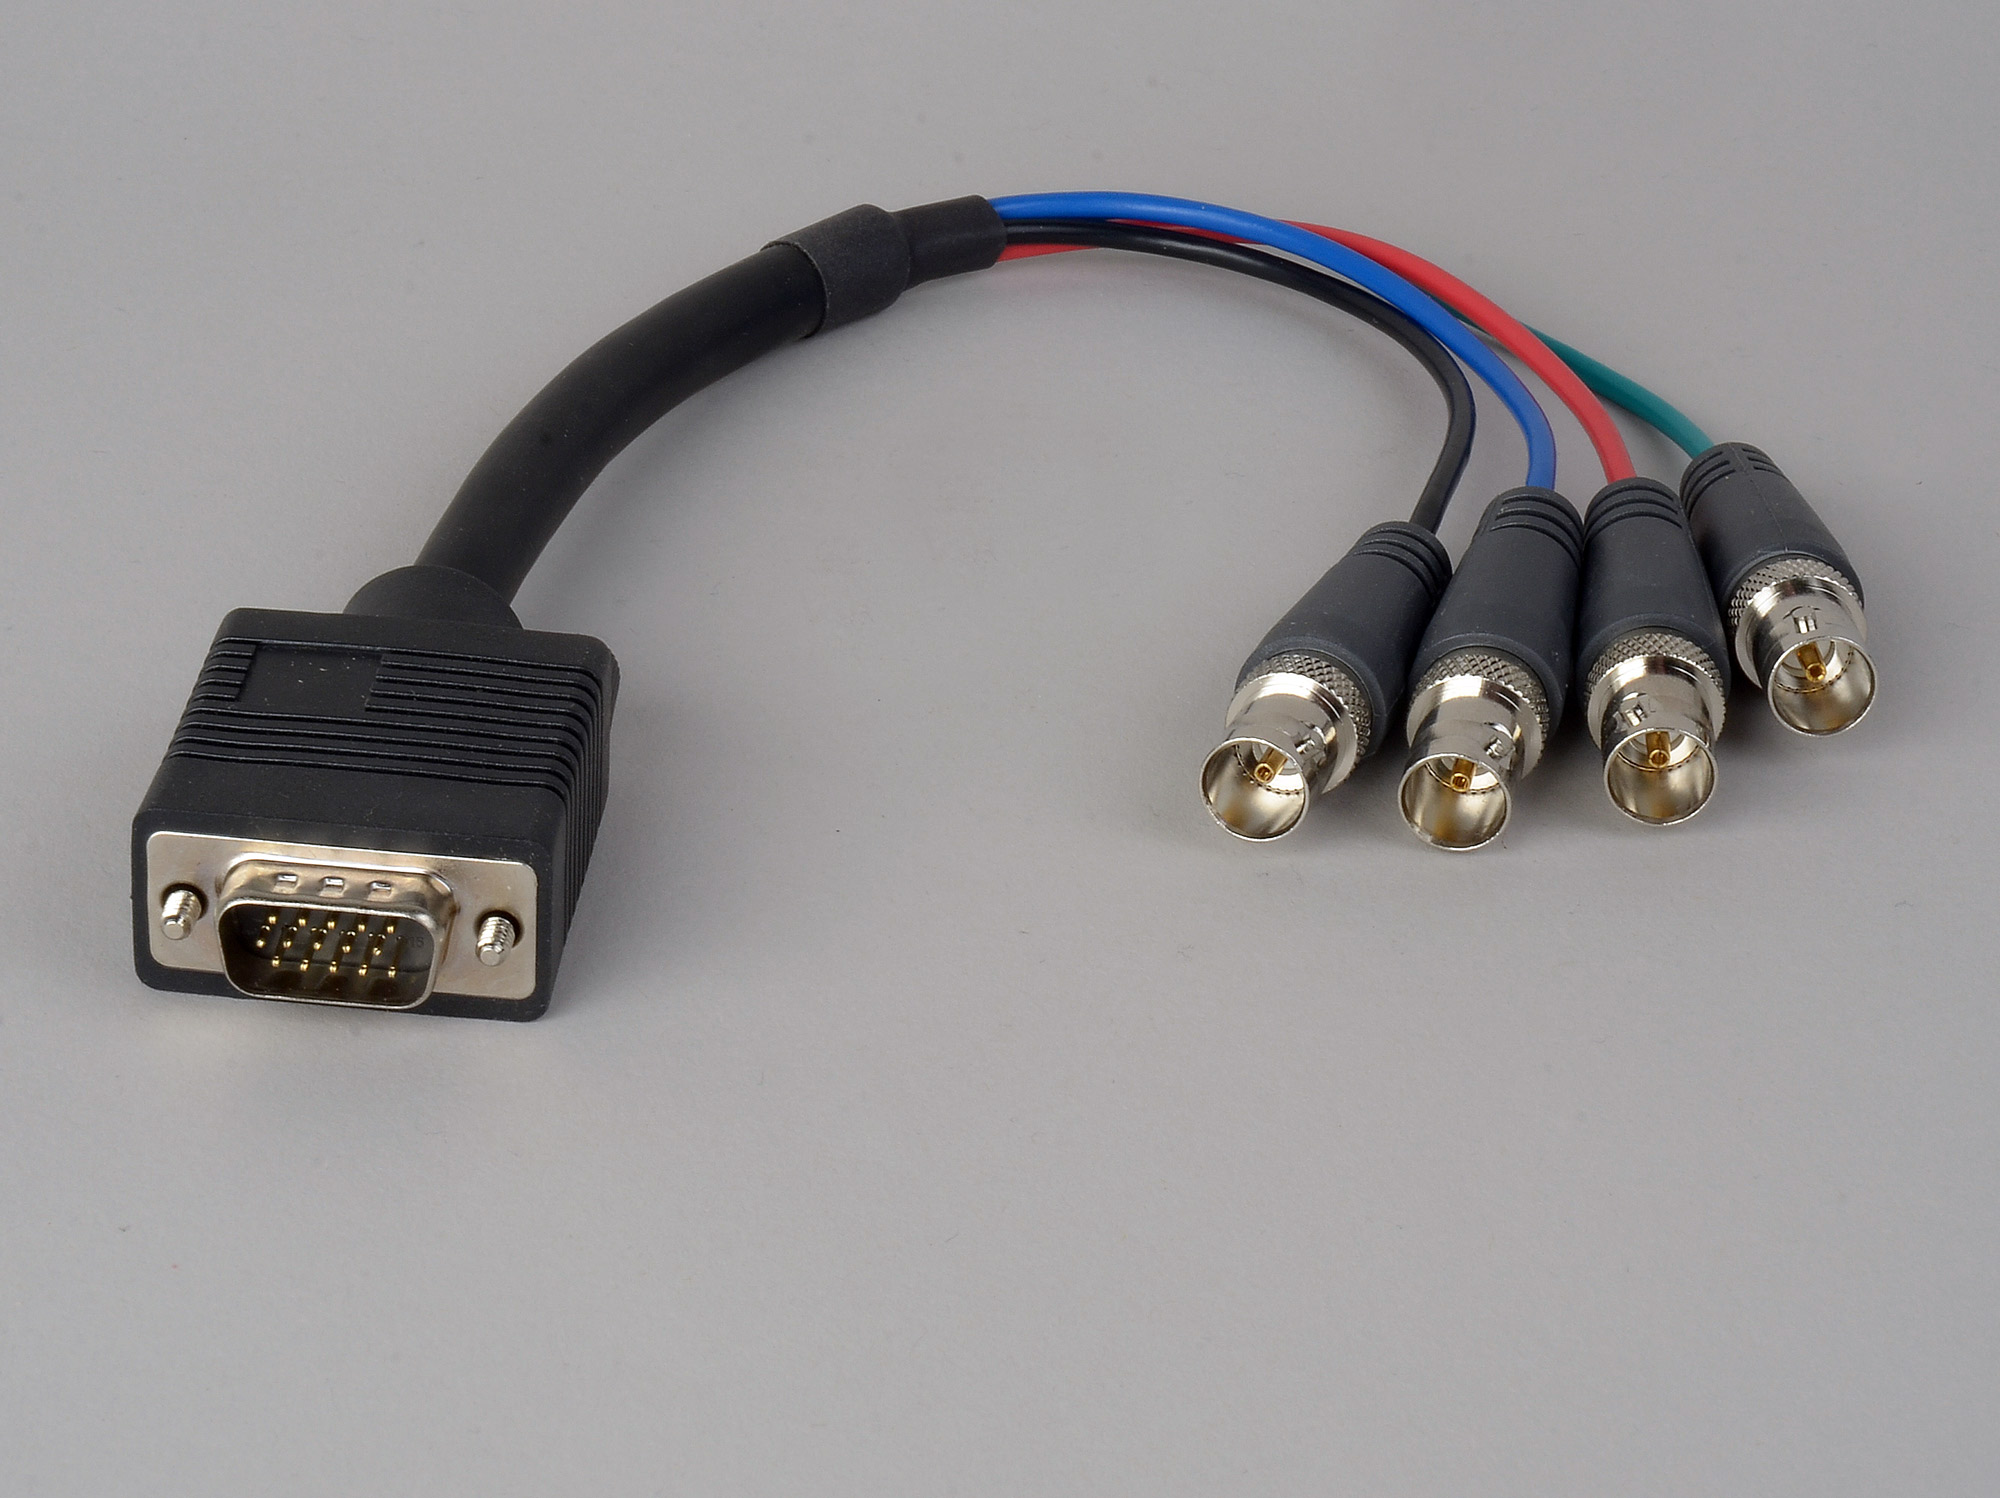 High Density Cable : High density d sub pin vga male to bnc female cable